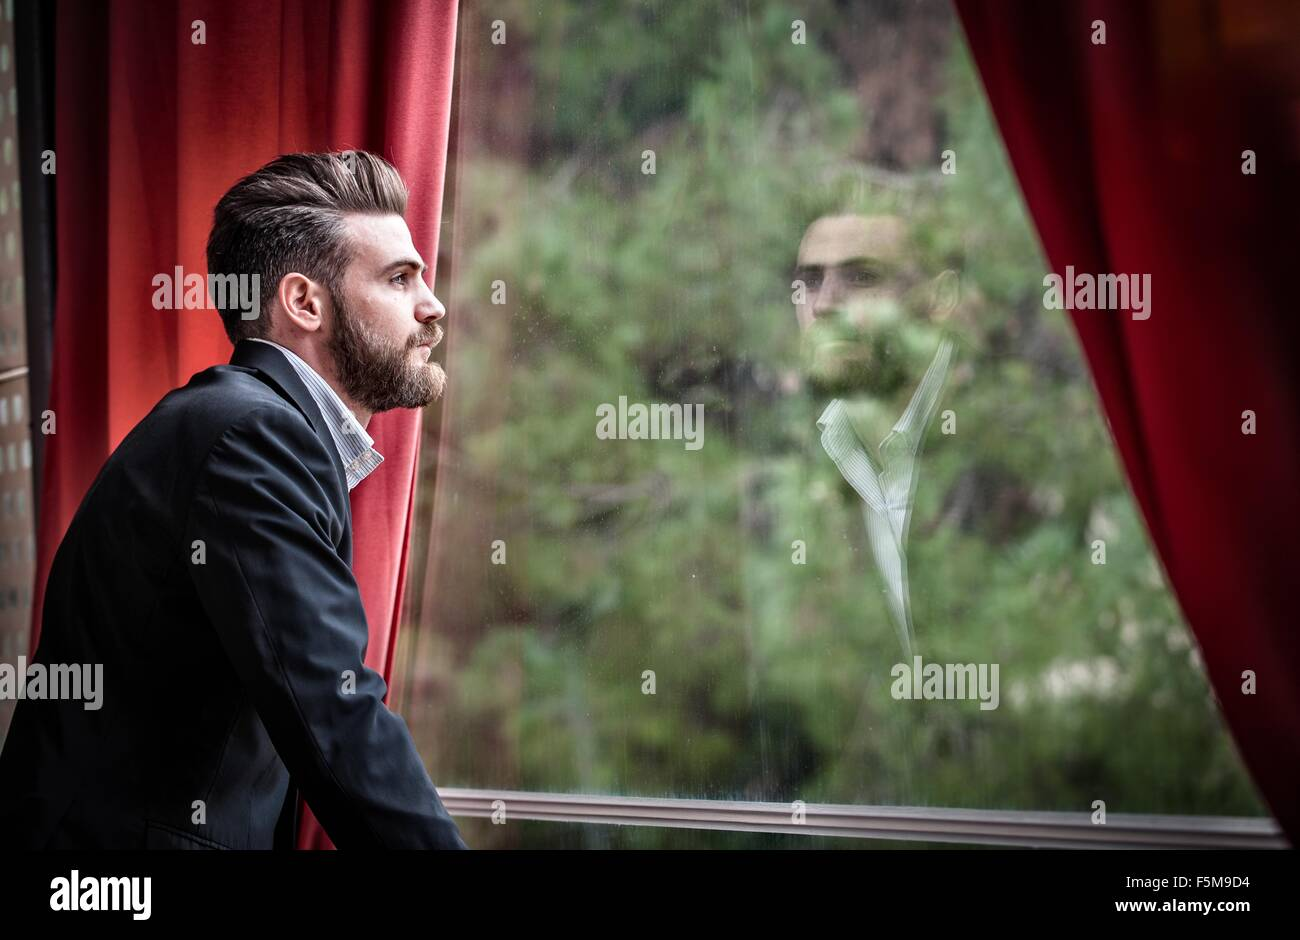 Side view of mid adult man wearing suit looking out of window - Stock Image